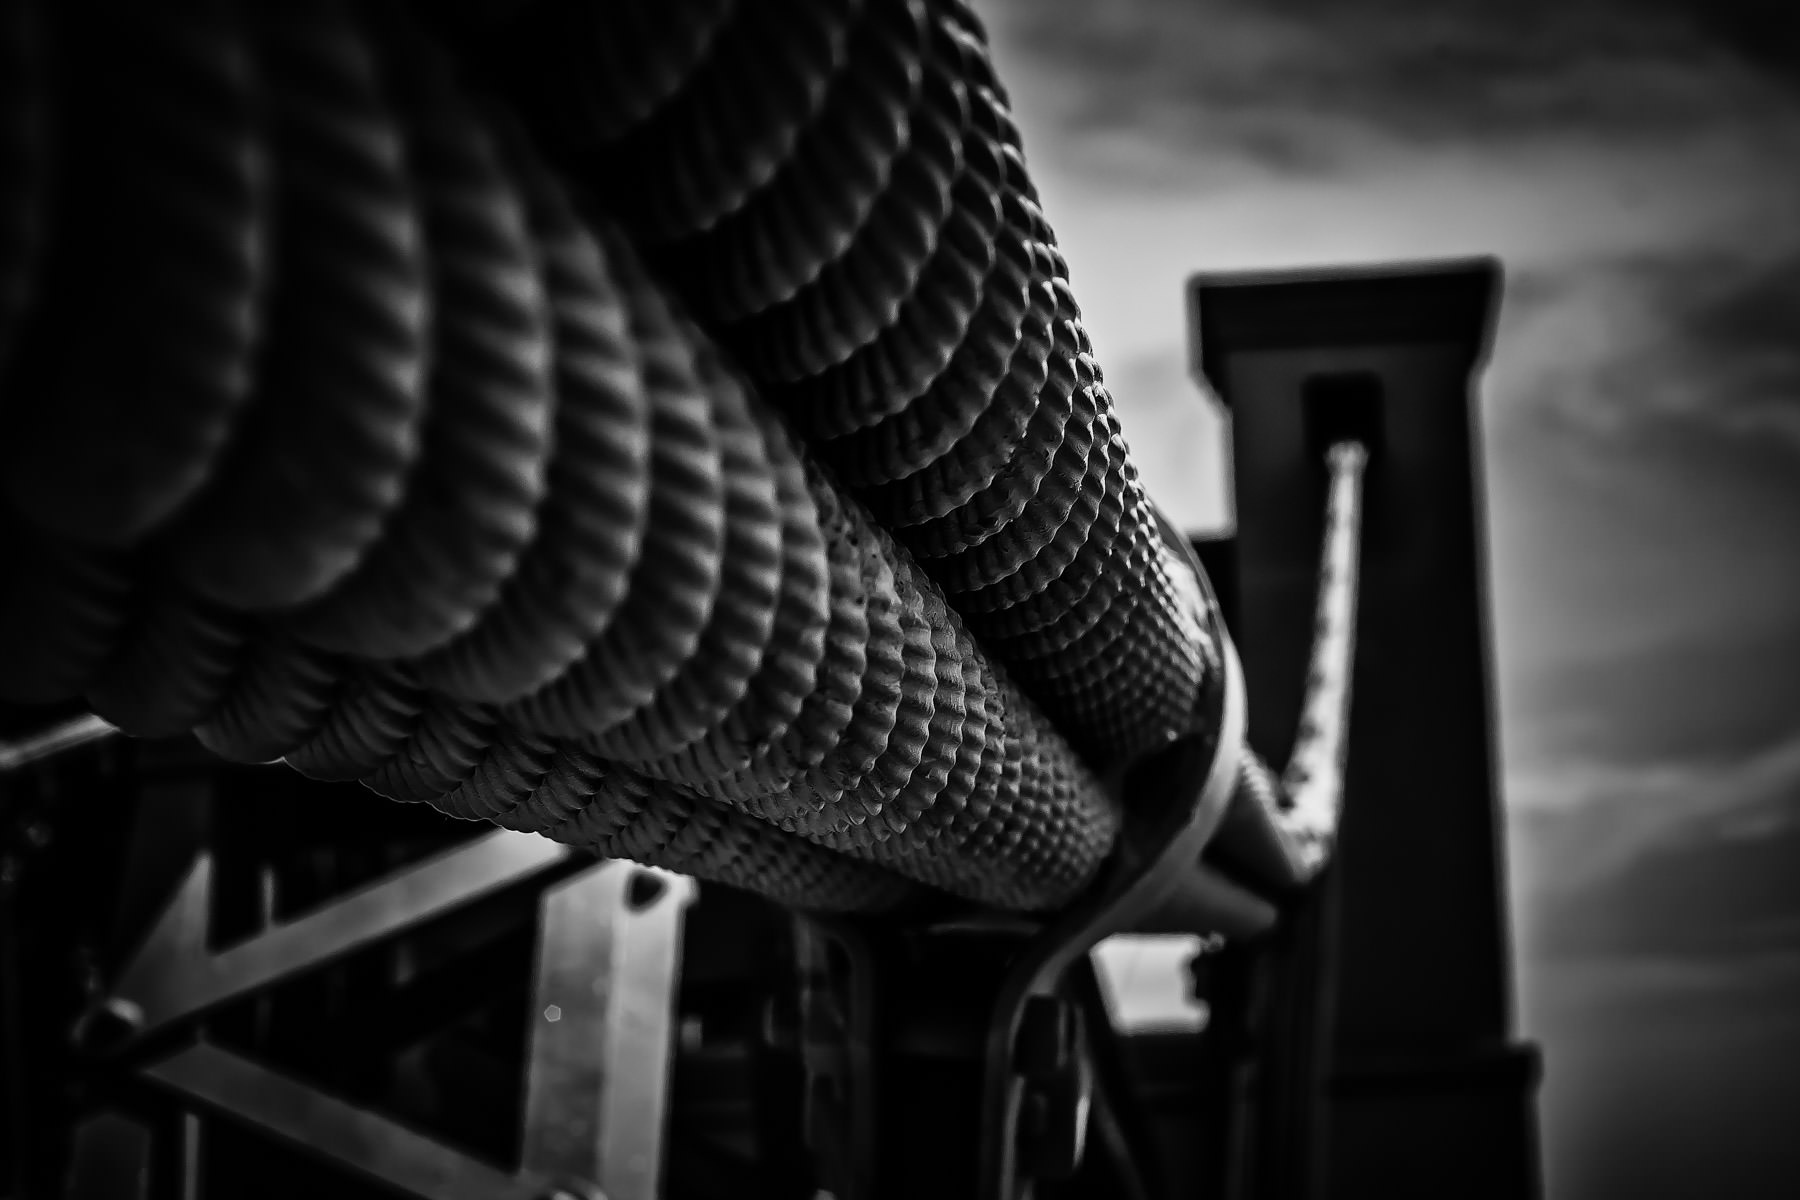 Support cables leading to the top of one of the support towers on the Waco Suspension Bridge, Waco, Texas.